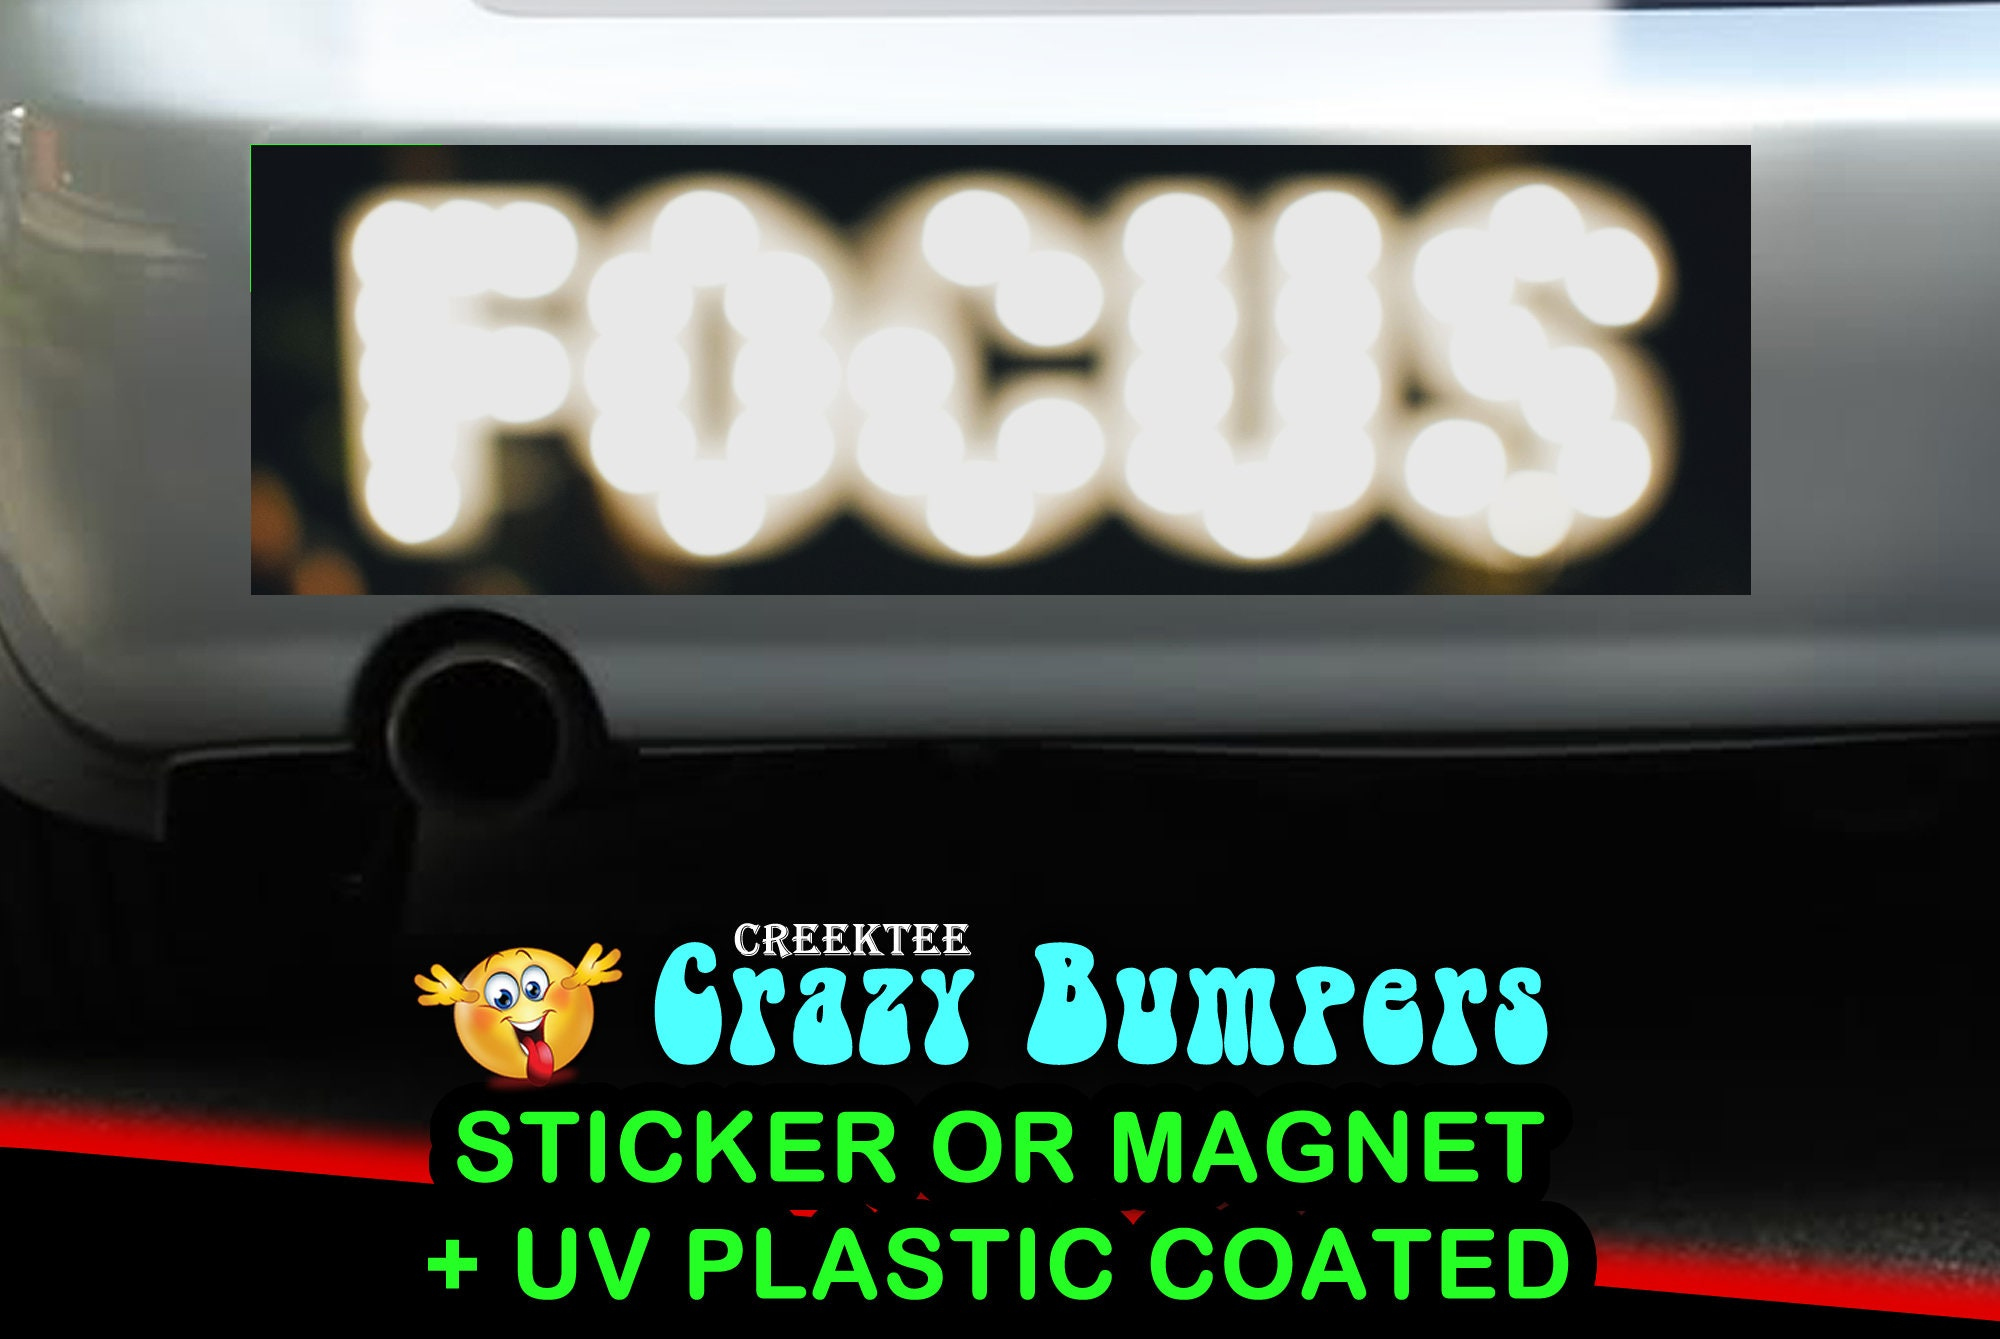 CAD$7.99 - FOCUS 10 x 3 Bumper Sticker or Magnet - Custom changes and orders welcomed!